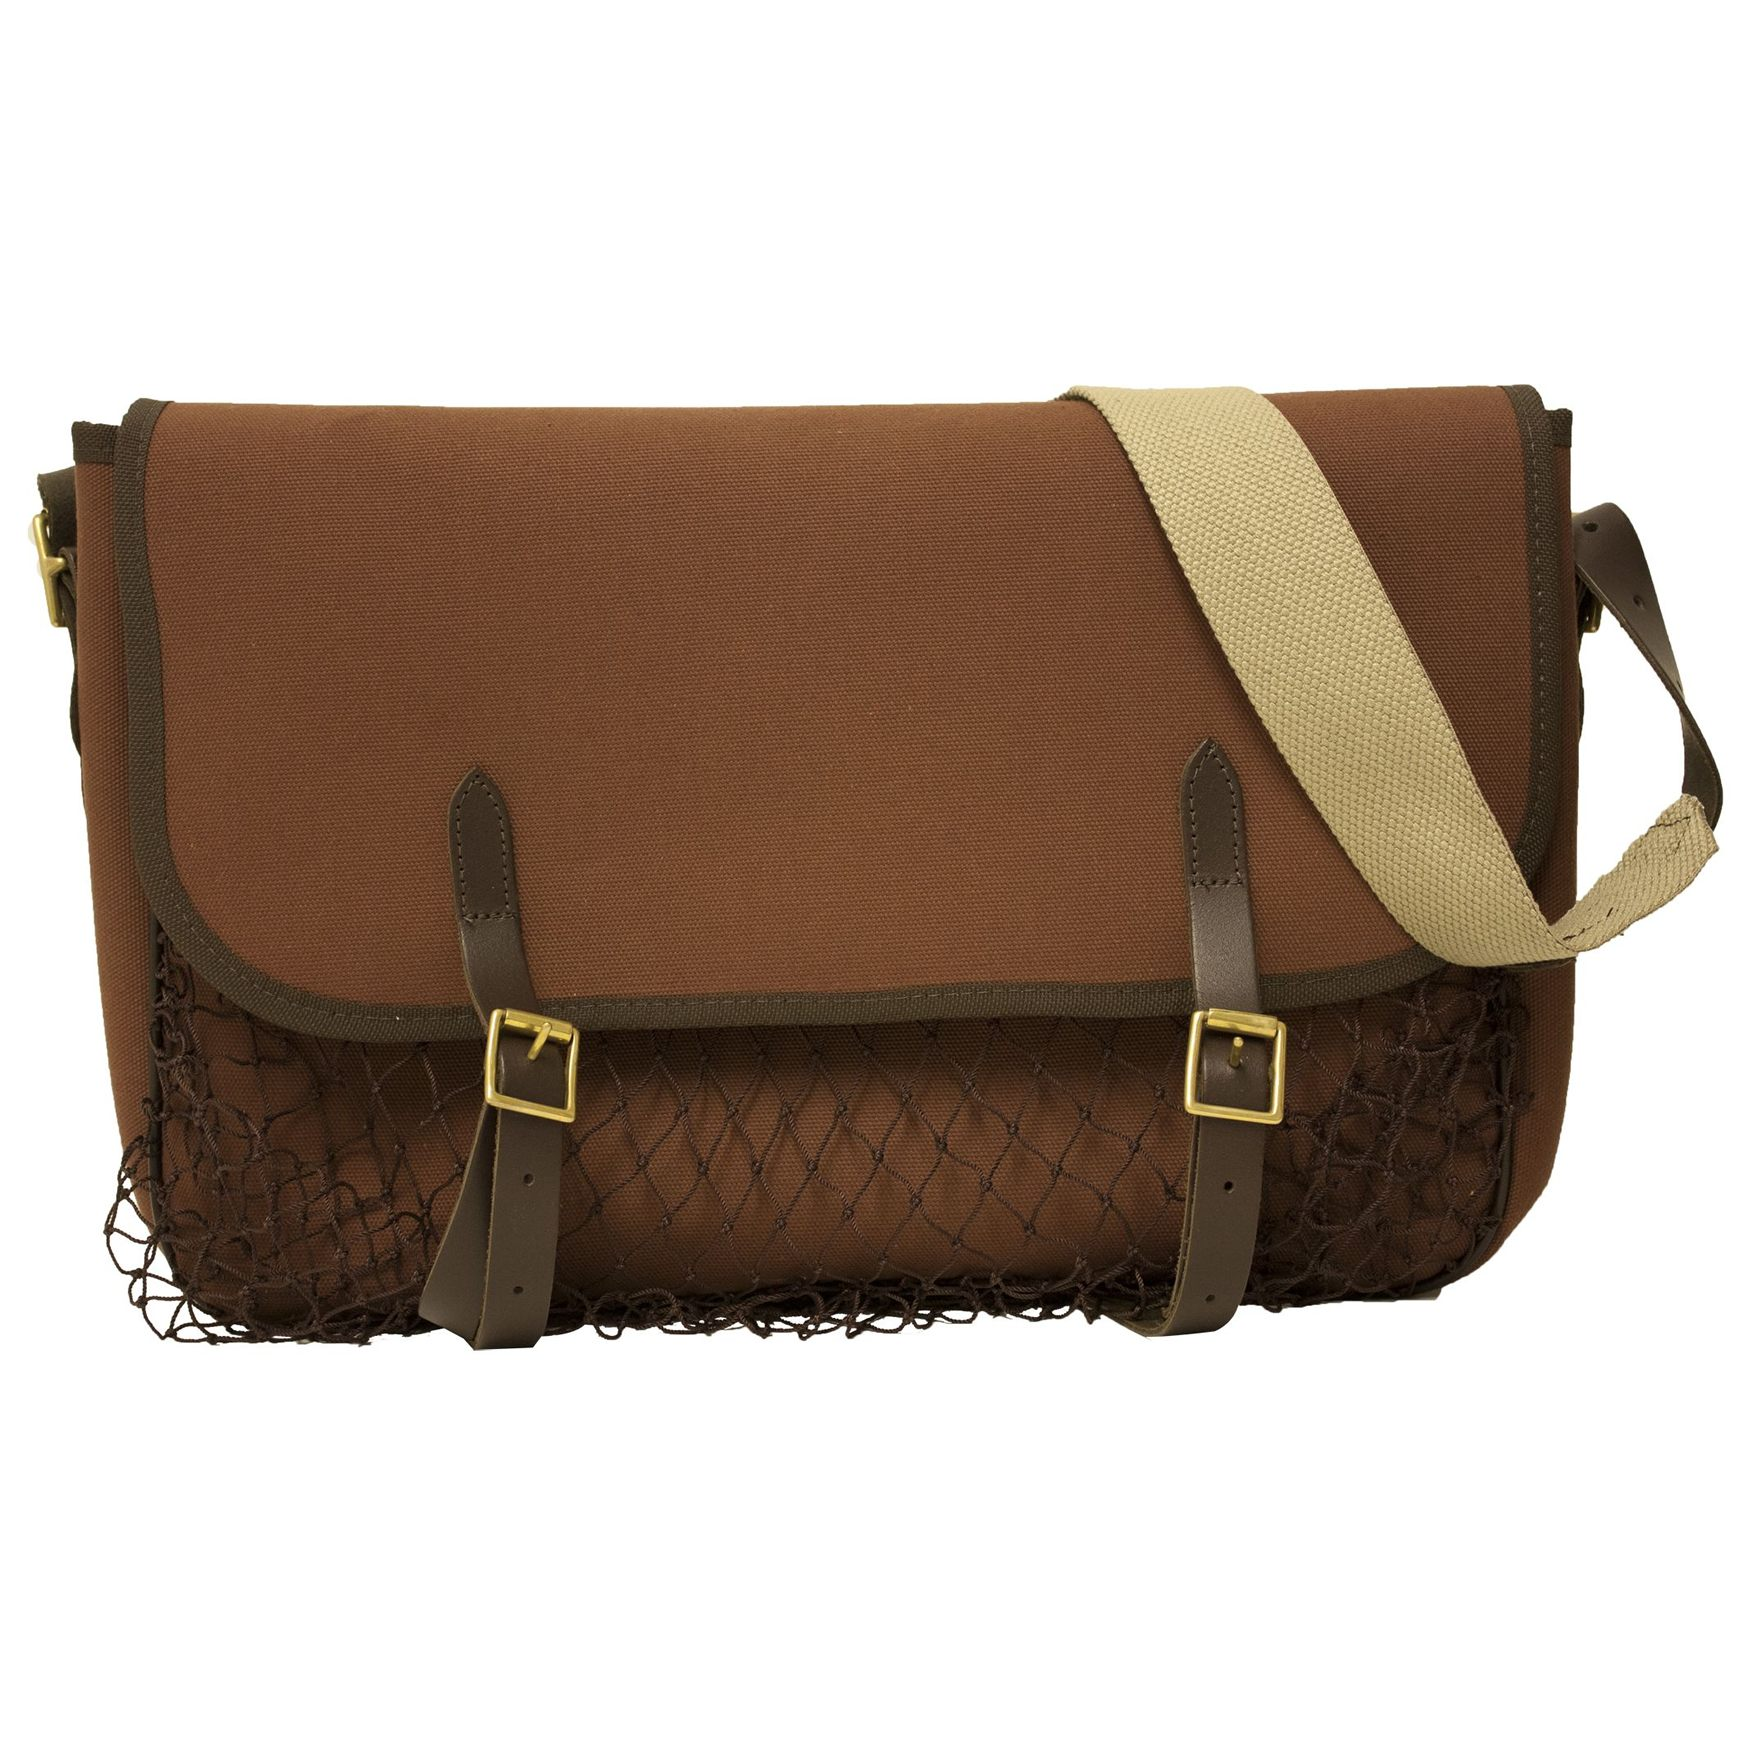 Bisley Canvas Game Bag Leather And Brass Fittings Shooting